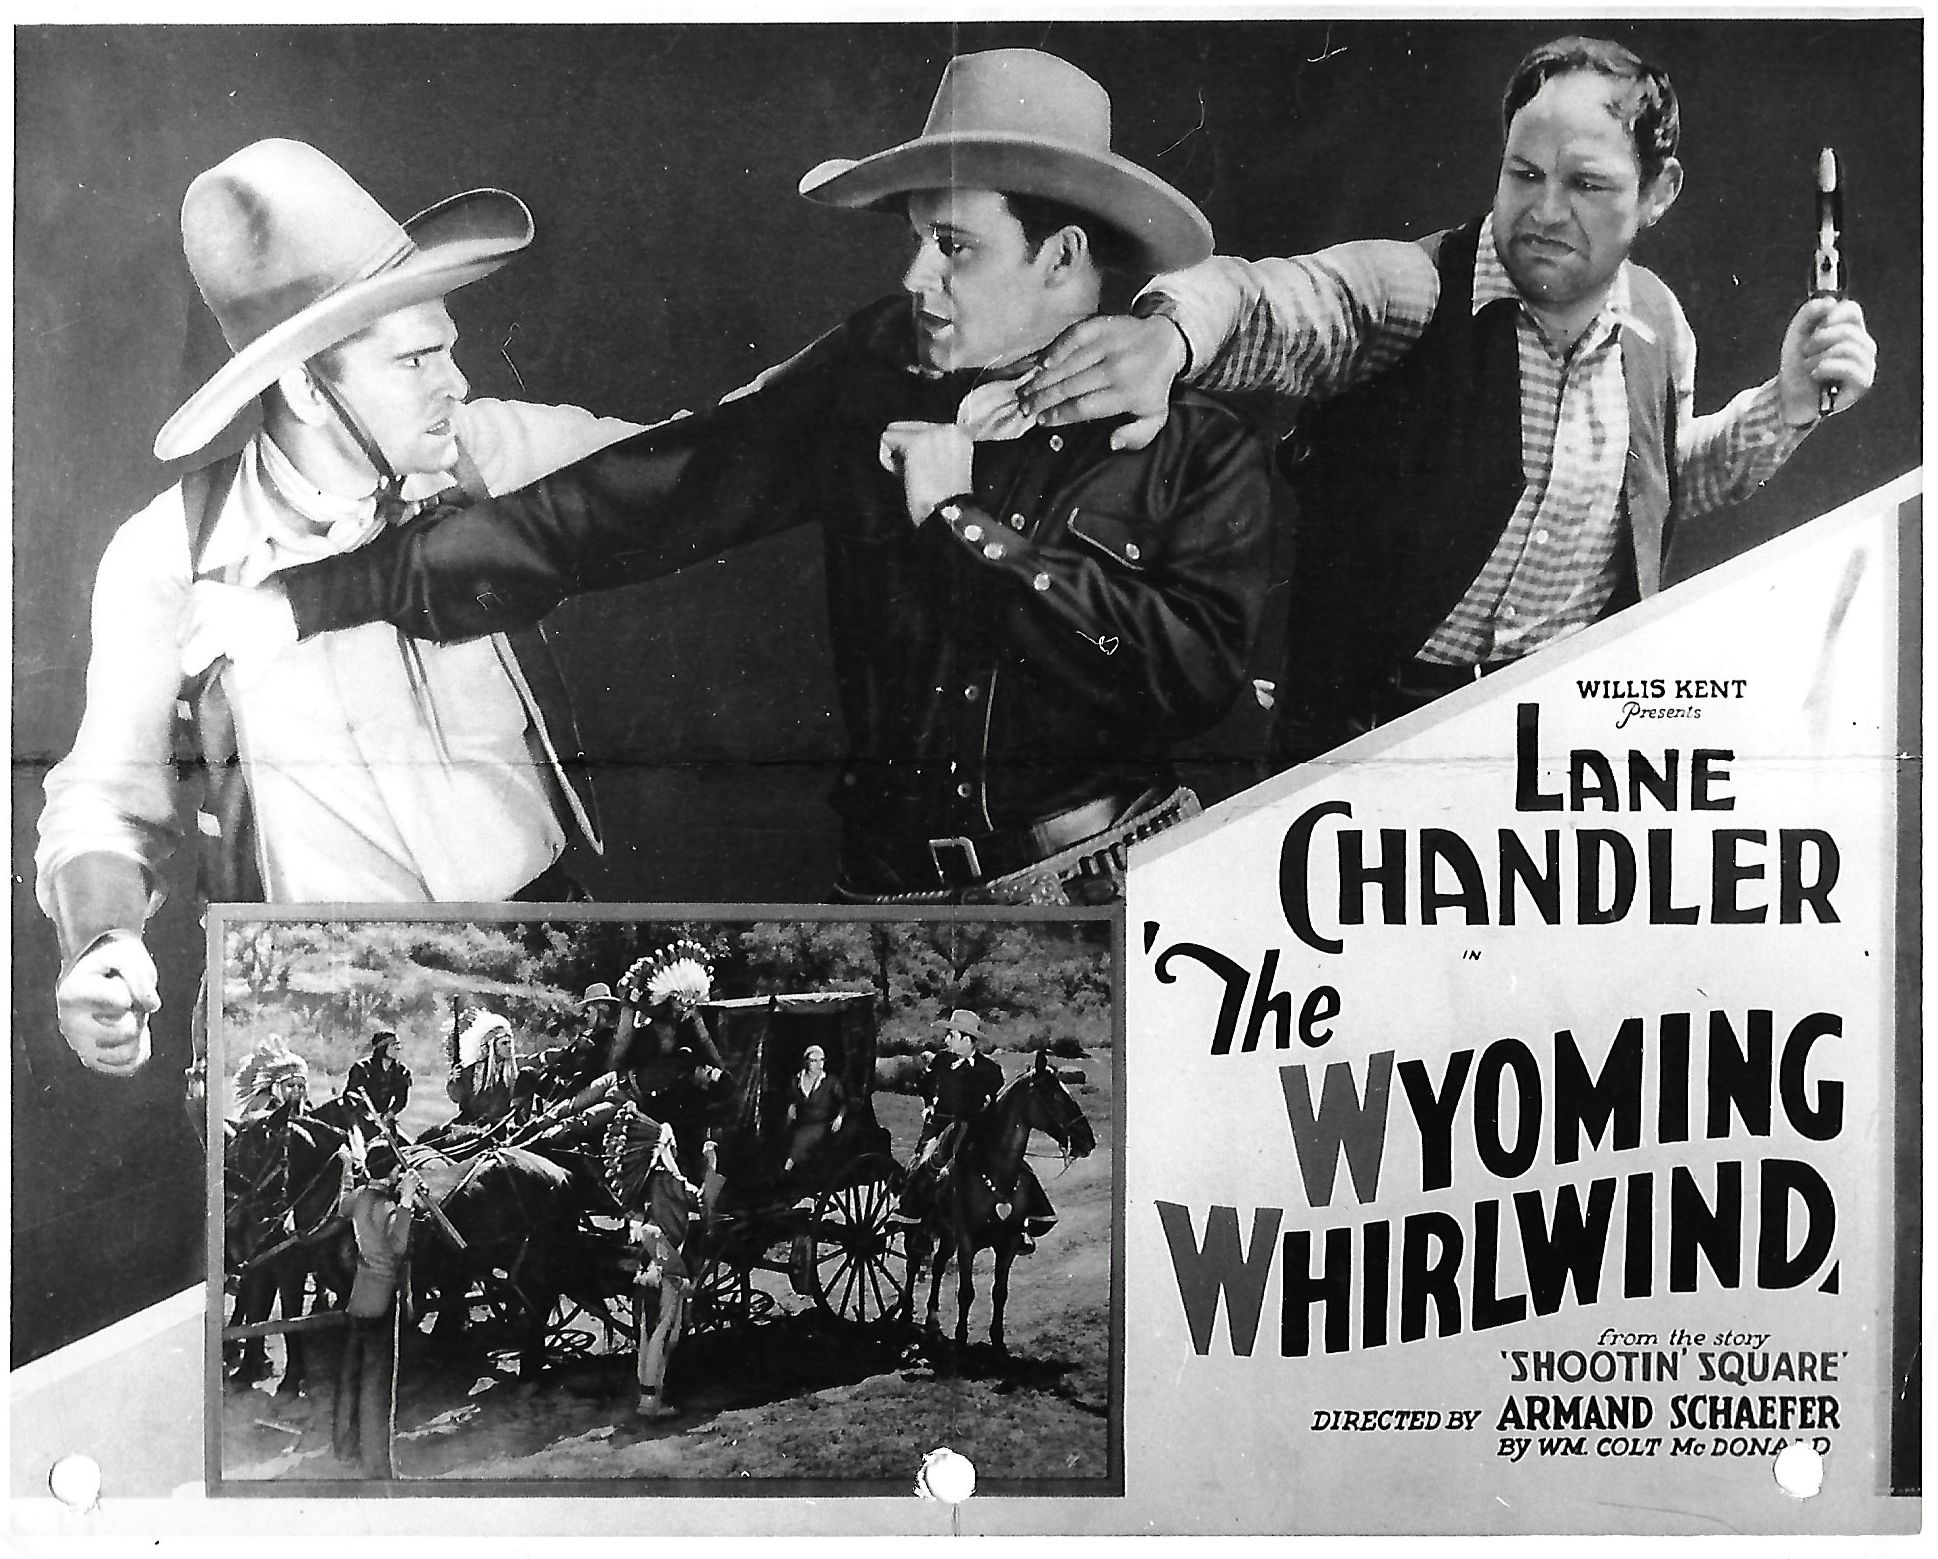 Yakima Canutt, Lane Chandler, Adele Lacy, and Bob Roper in The Wyoming Whirlwind (1932)